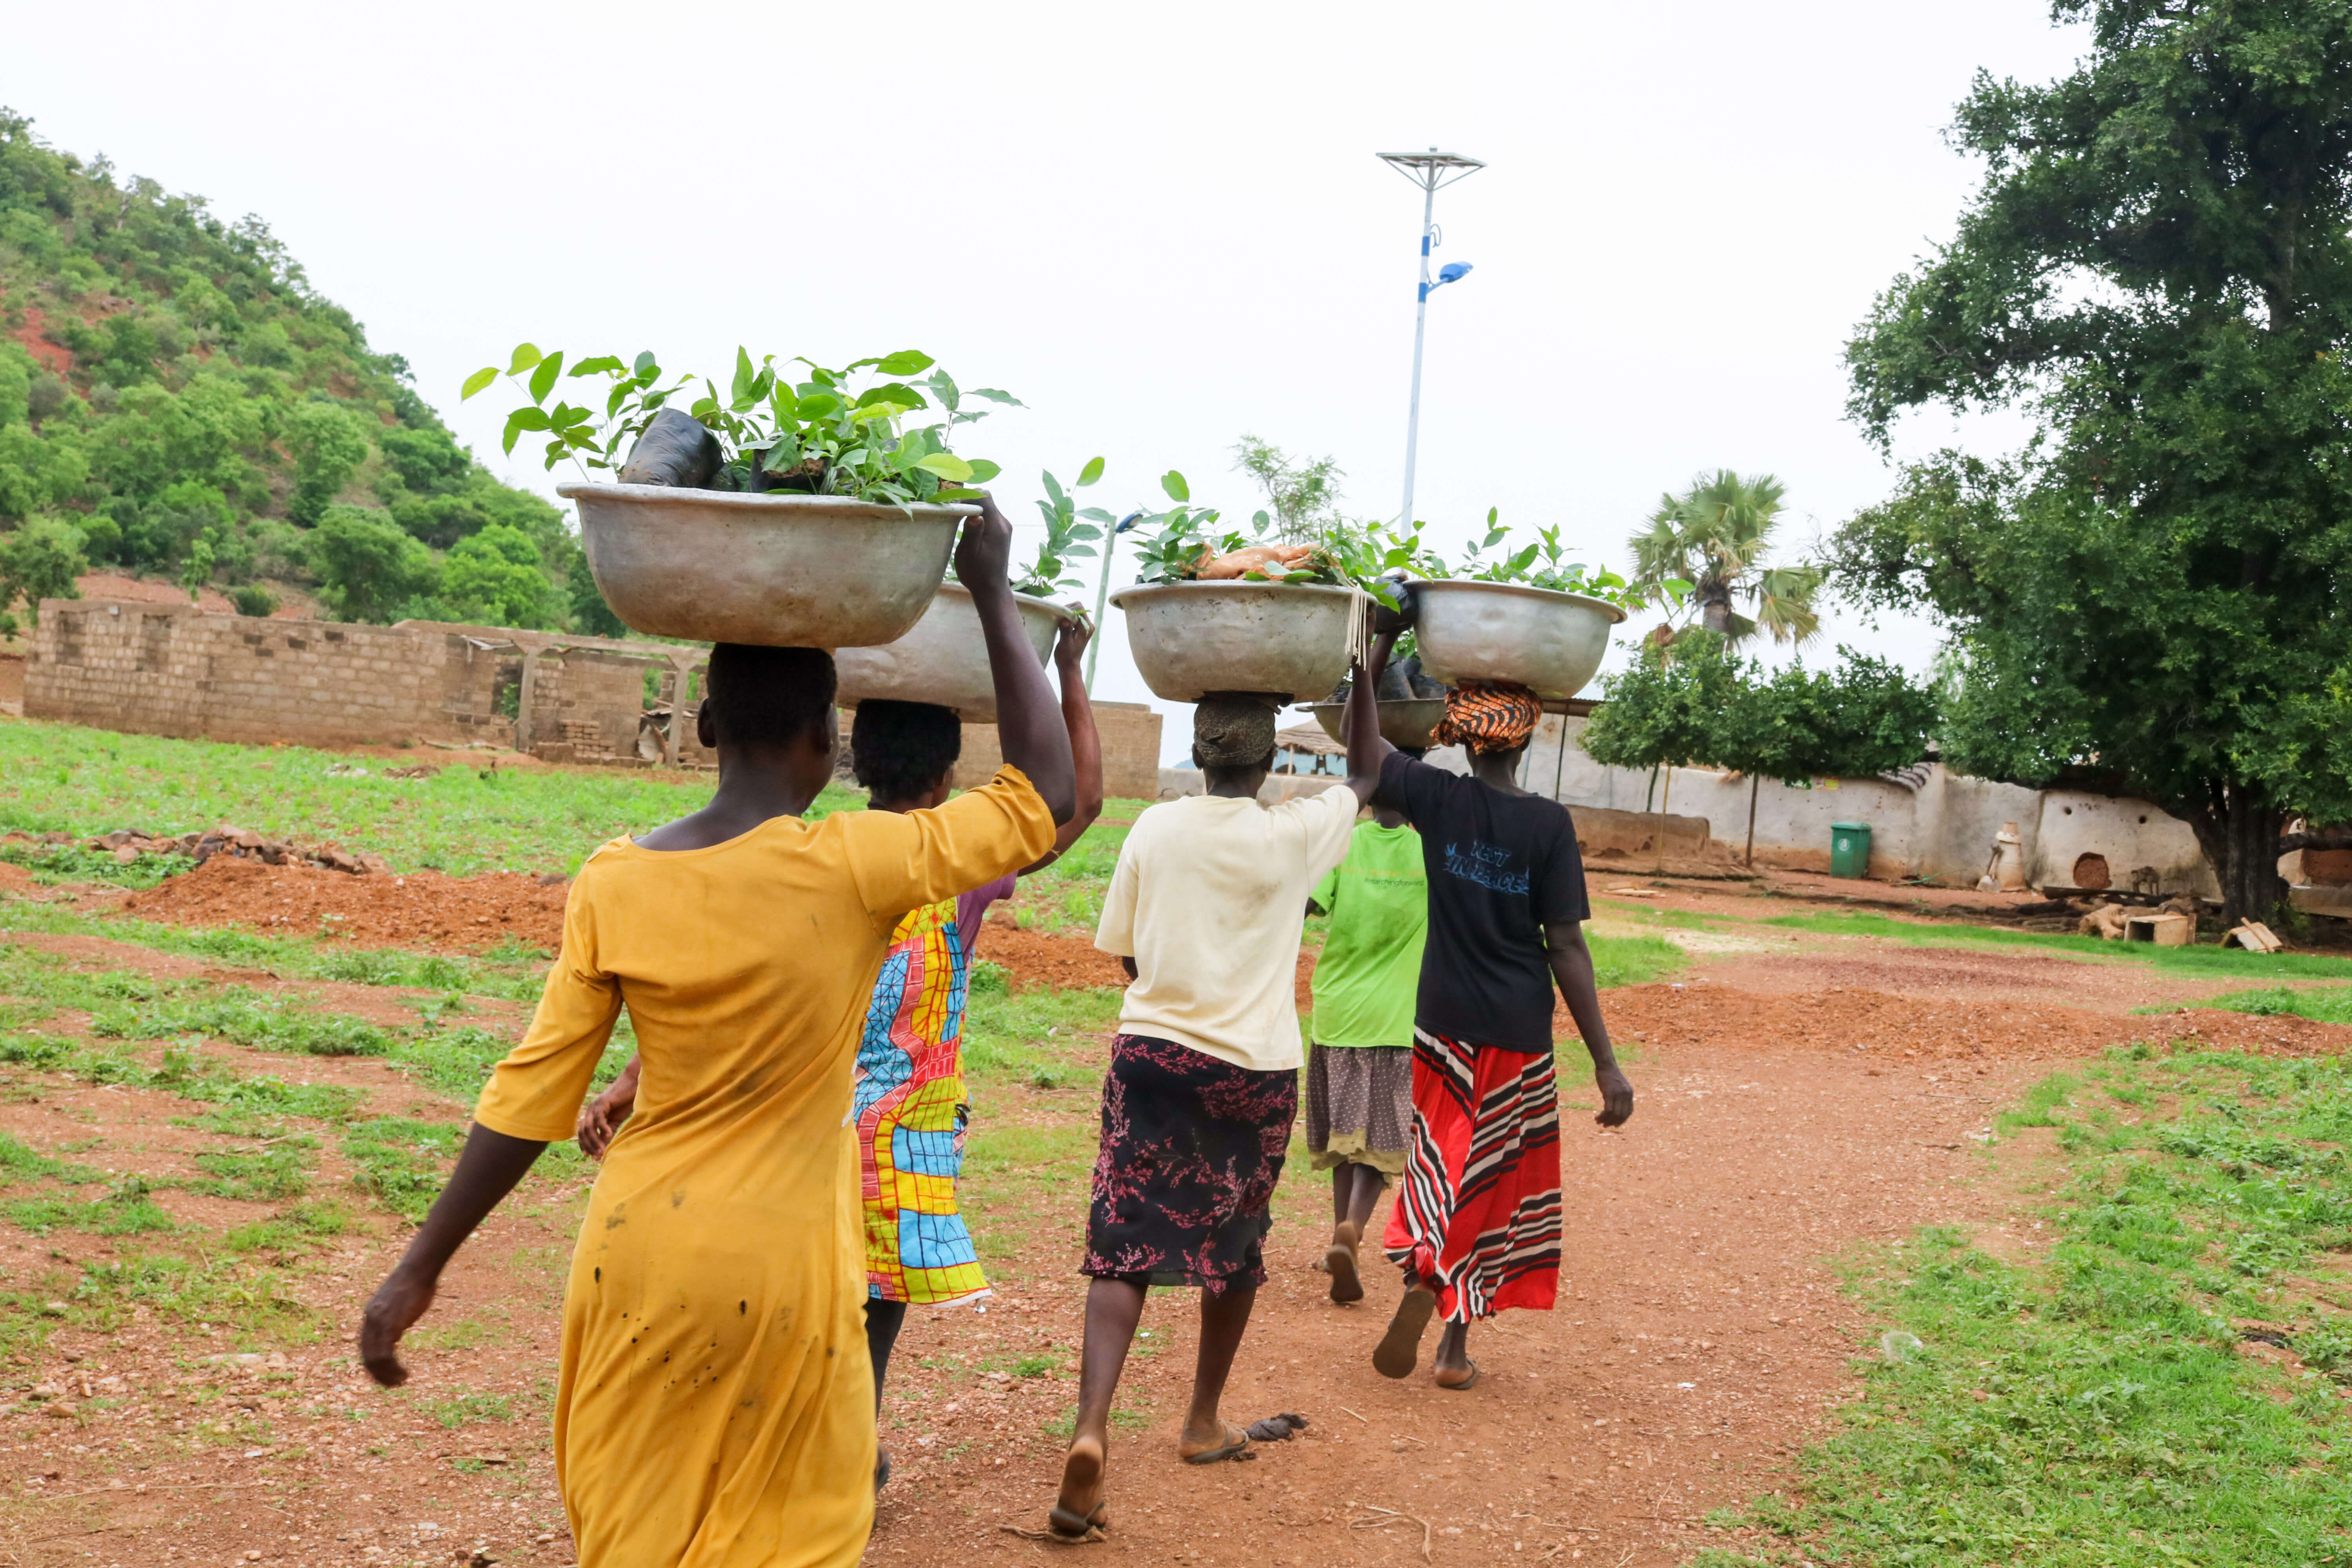 women carrying saplings on their heads in ghana